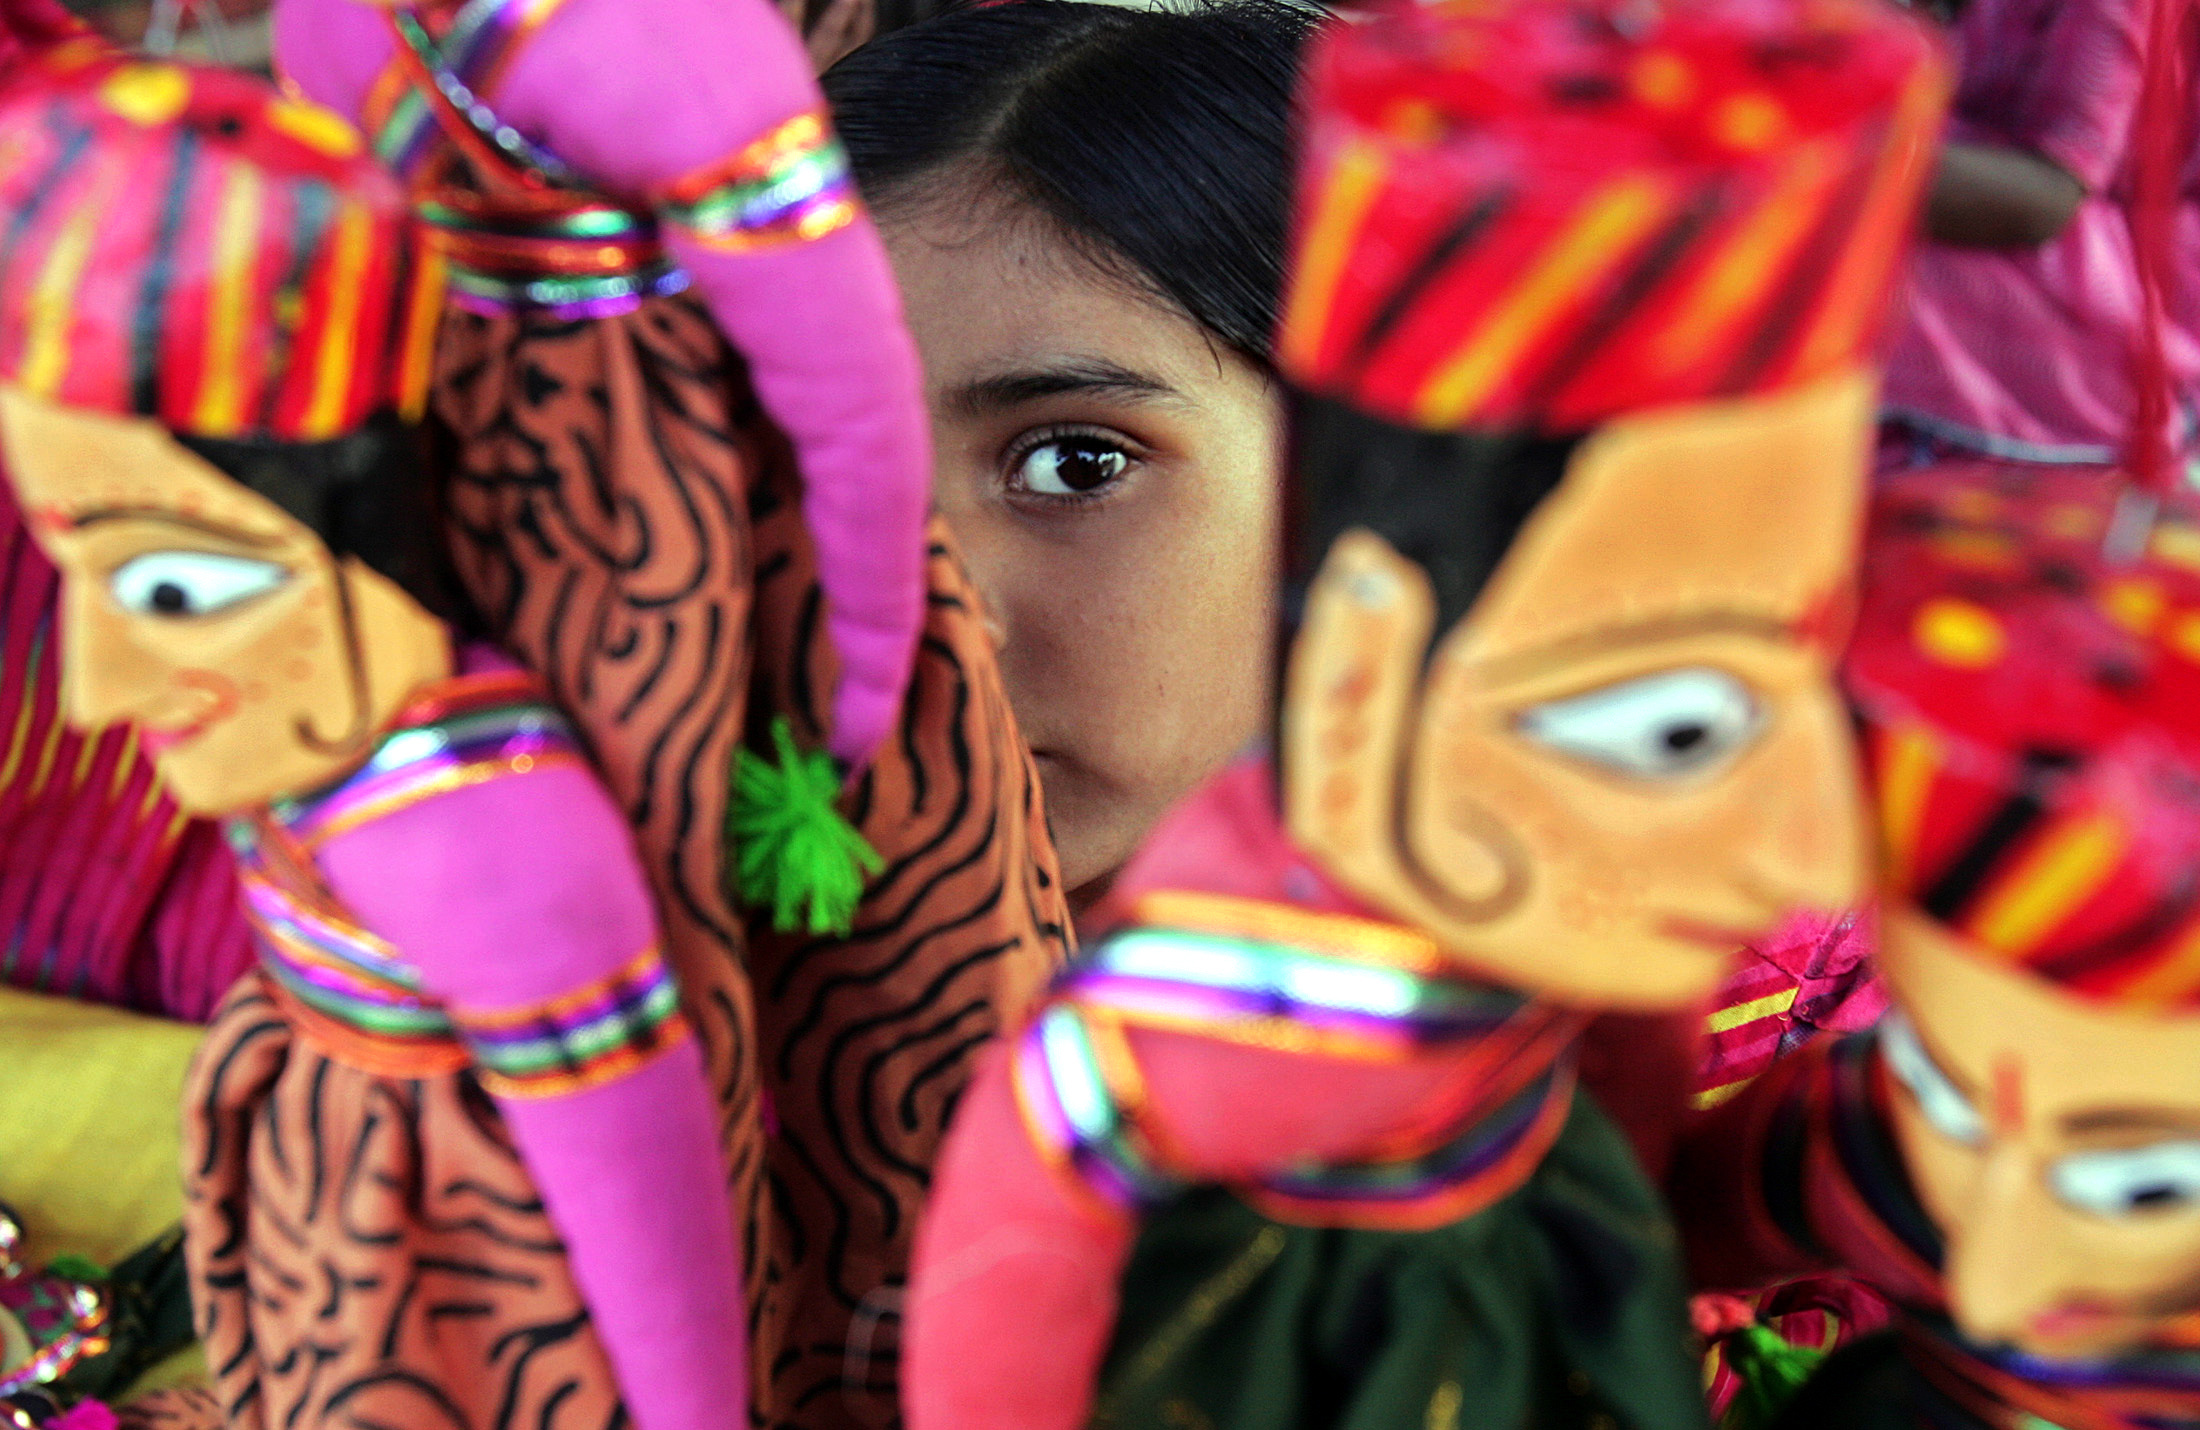 An Indian girl from the western Indian state of Gujarat looks through the puppets at a stall during a handicraft fair in the eastern Indian city of Kolkata November 28, 2005. REUTERS/Parth Sanyal - RTR1BQEC